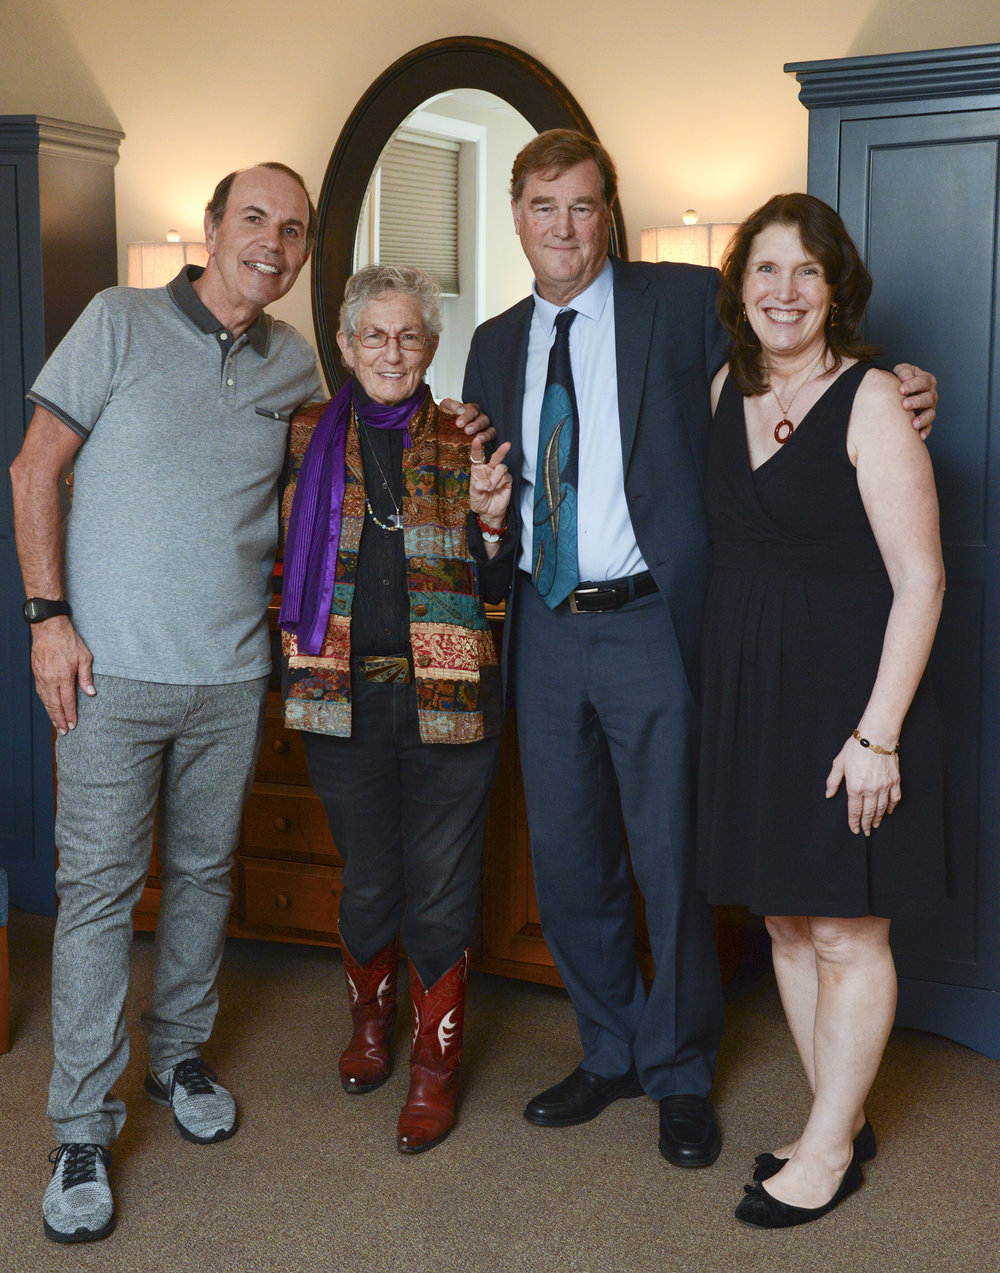 Festival Co-Chairs Ron Collins and Jen Mason w/ Keynote Presenter Blanche Wiesen Cook and Interviewer Paul Sparrow